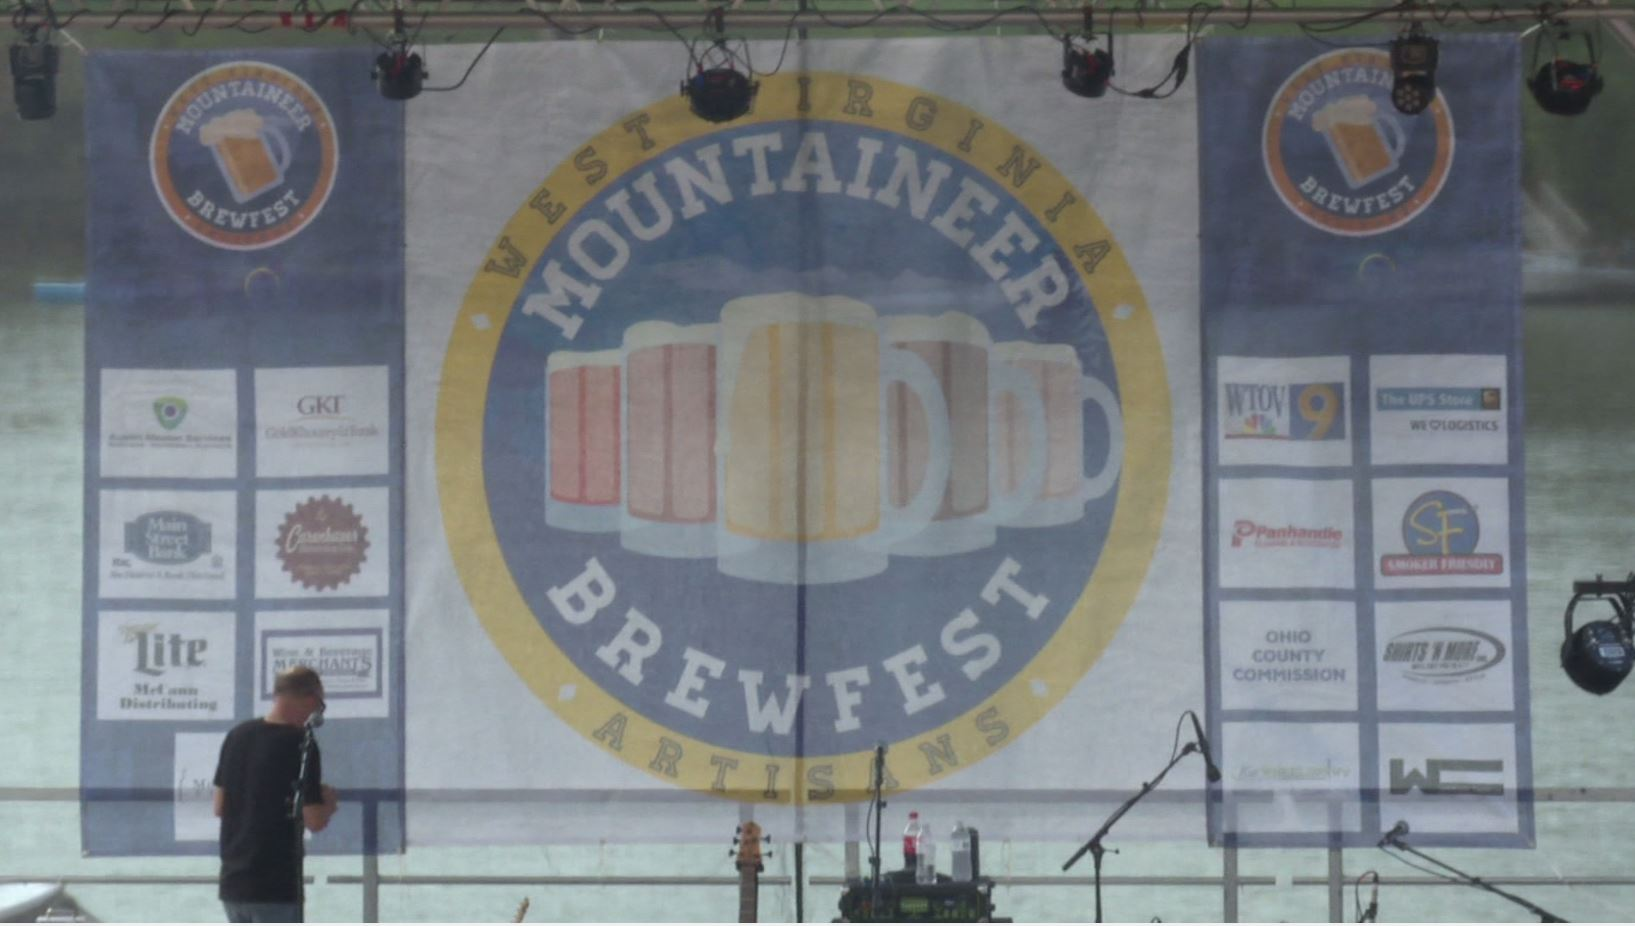 Mountaineer Brewfest brings West Virginia brewers to Wheeling